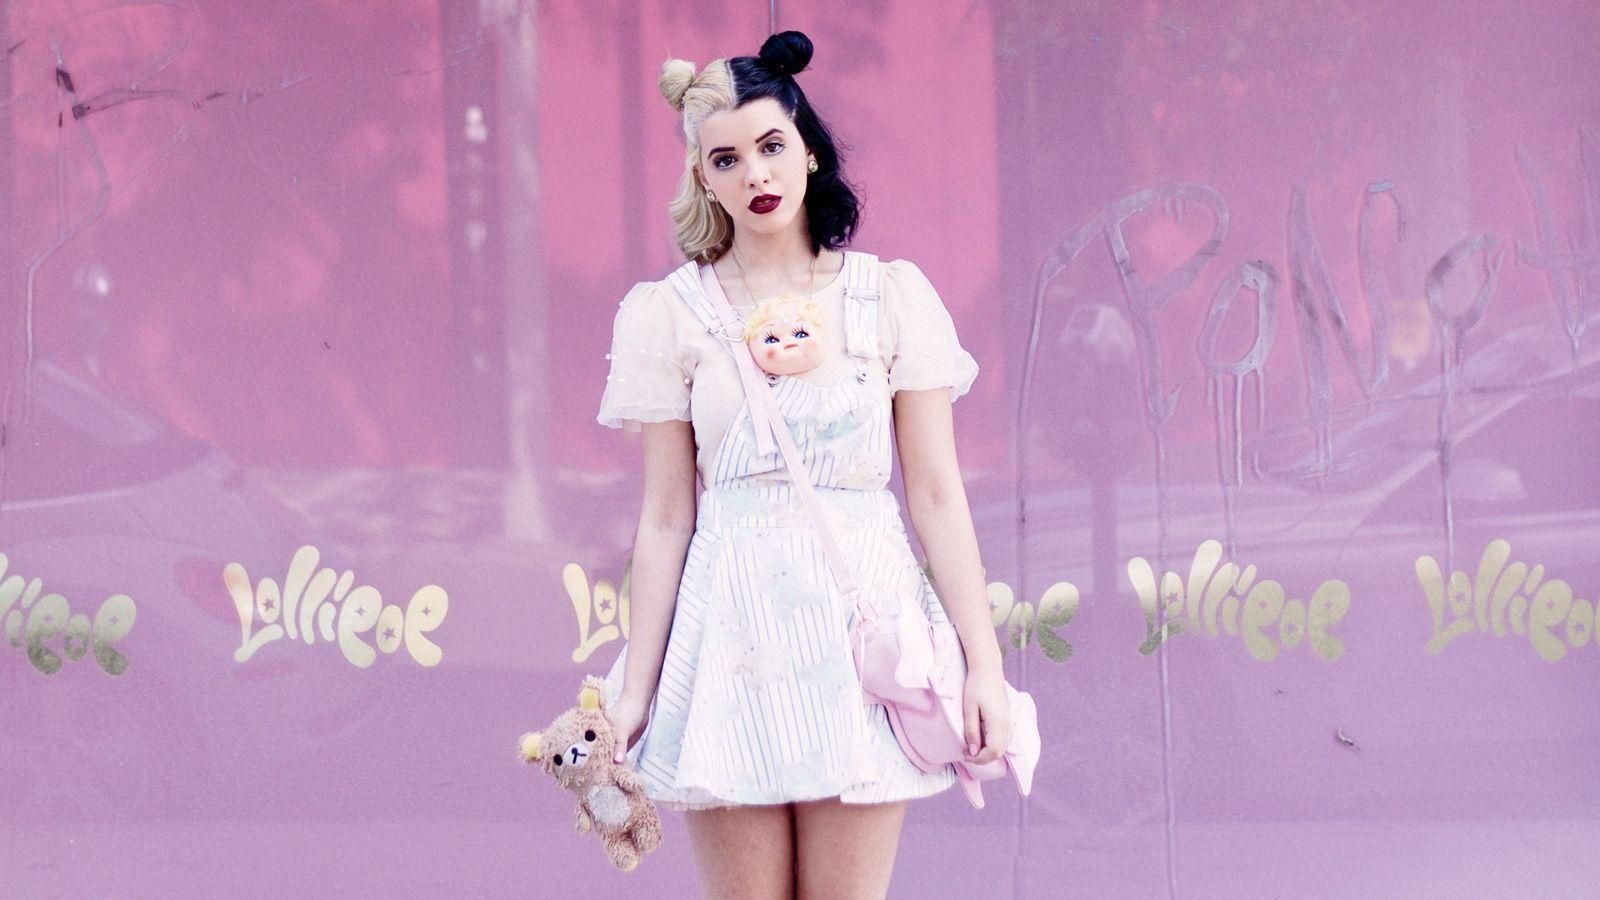 Melanie Martinez Wallpaper For Mobile Phone Tablet Desktop Computer And Other Devices Hd And 4k Wallpapers In 2020 Melanie Martinez Melanie Martinez